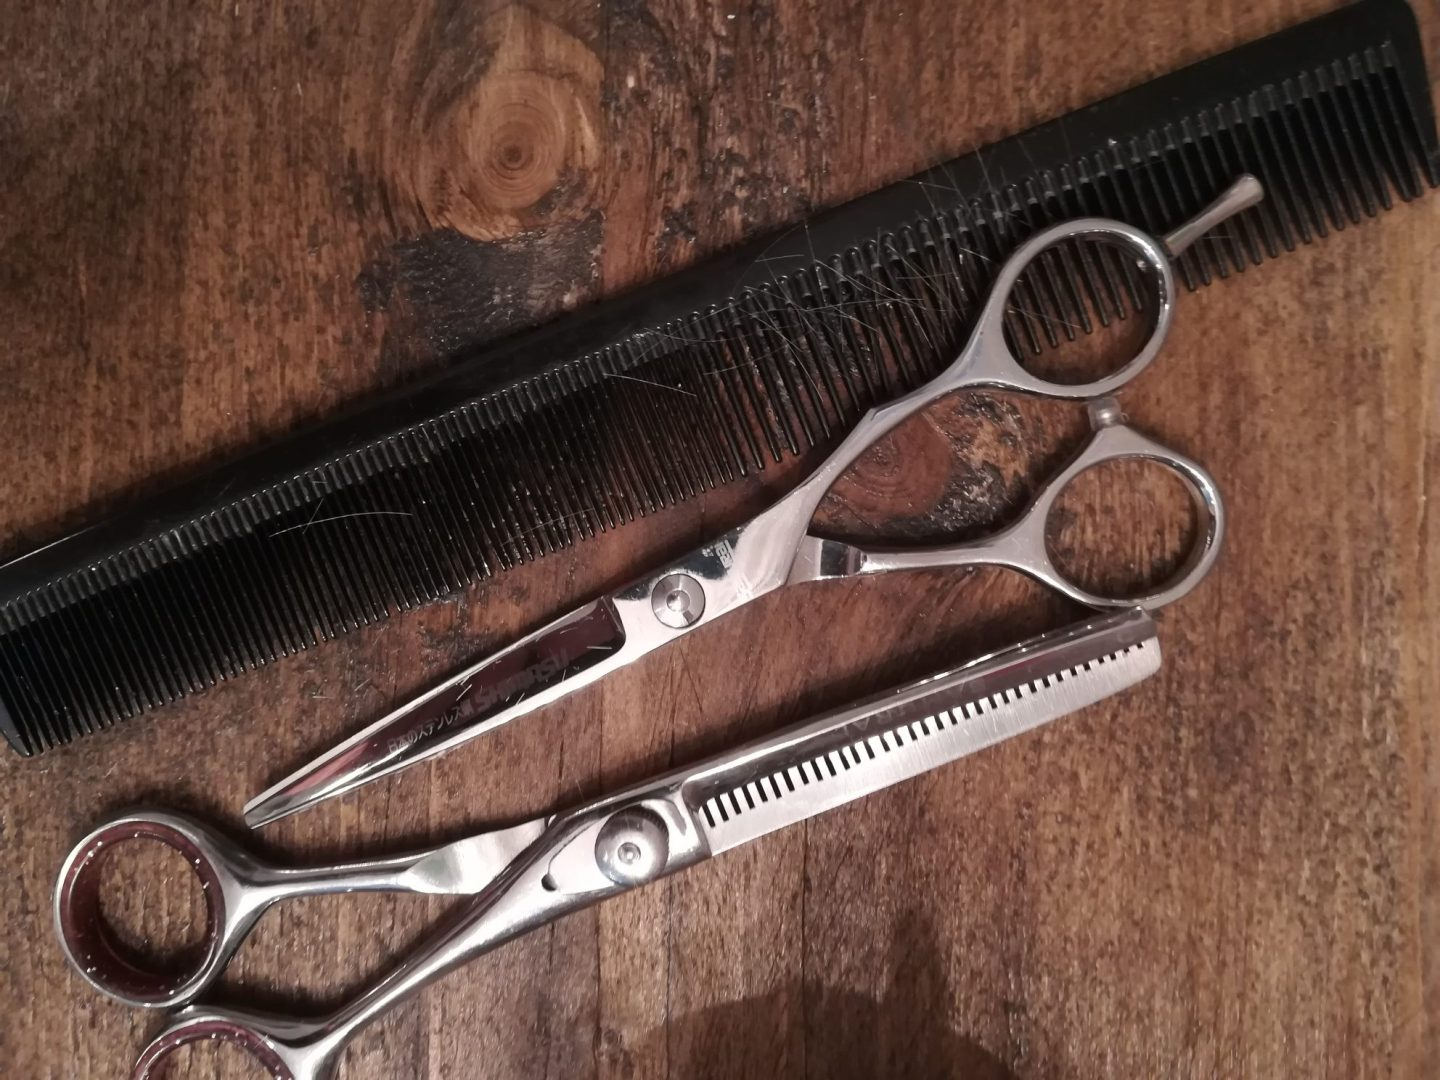 Autism friendly haircuts, hairdresser Scissors and comb